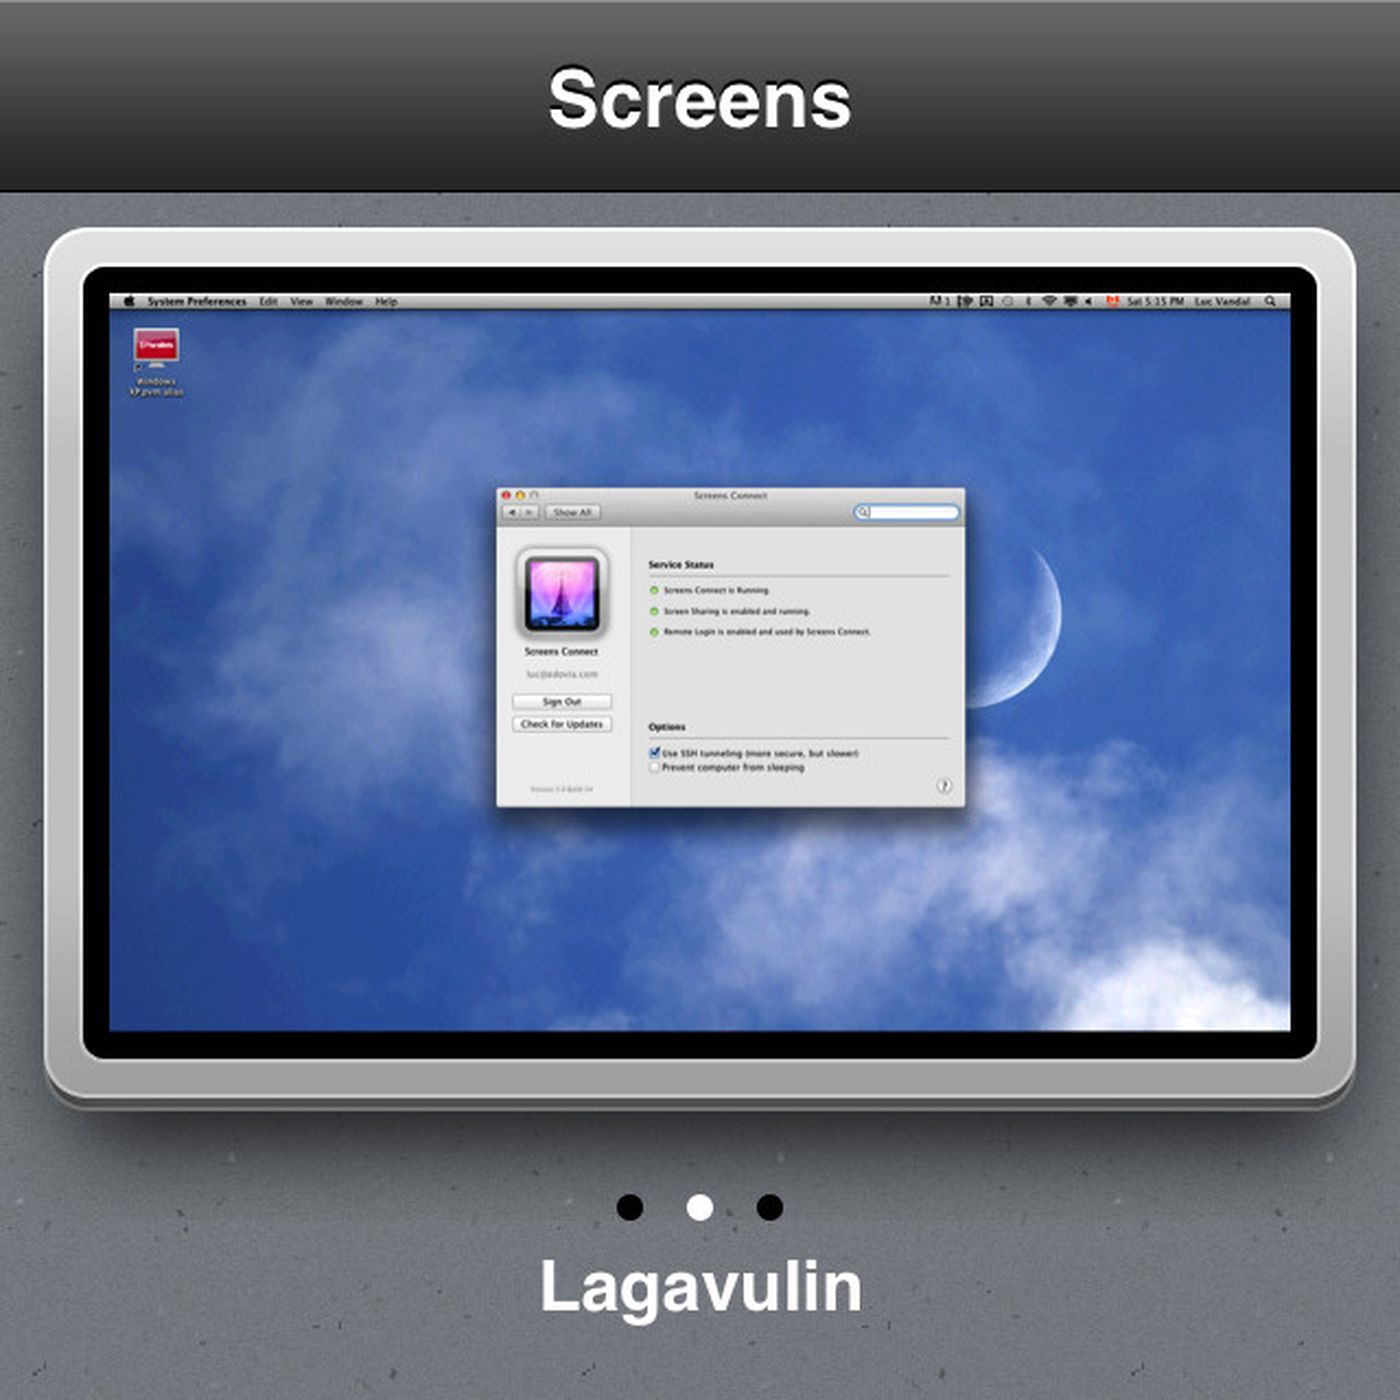 Screens VNC 2 0 for iOS adds iCloud syncing and AirPlay